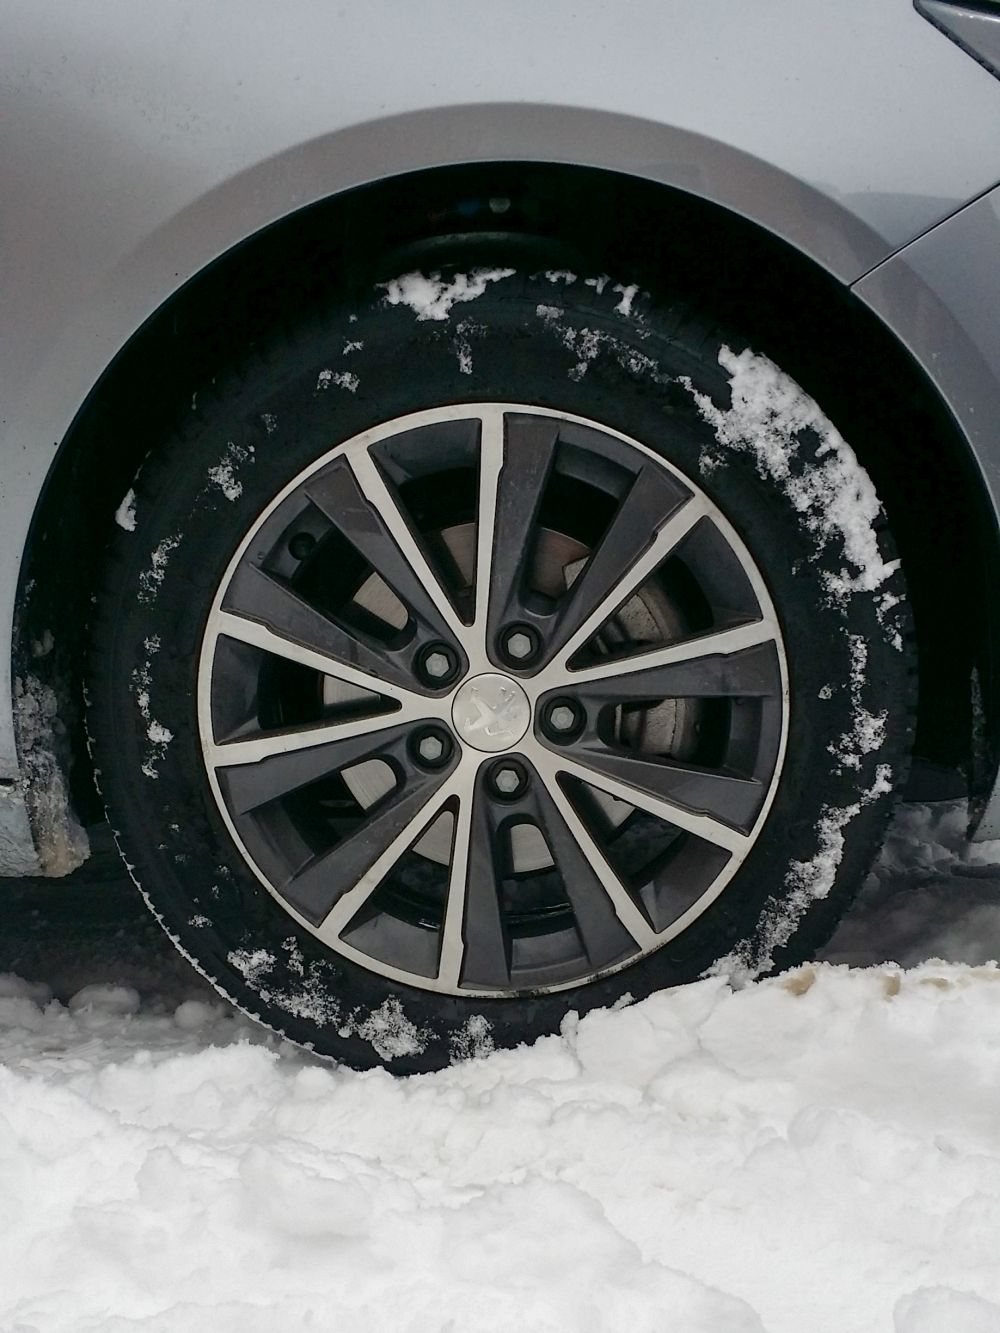 michelin_crossclimate_autogefuehl_002